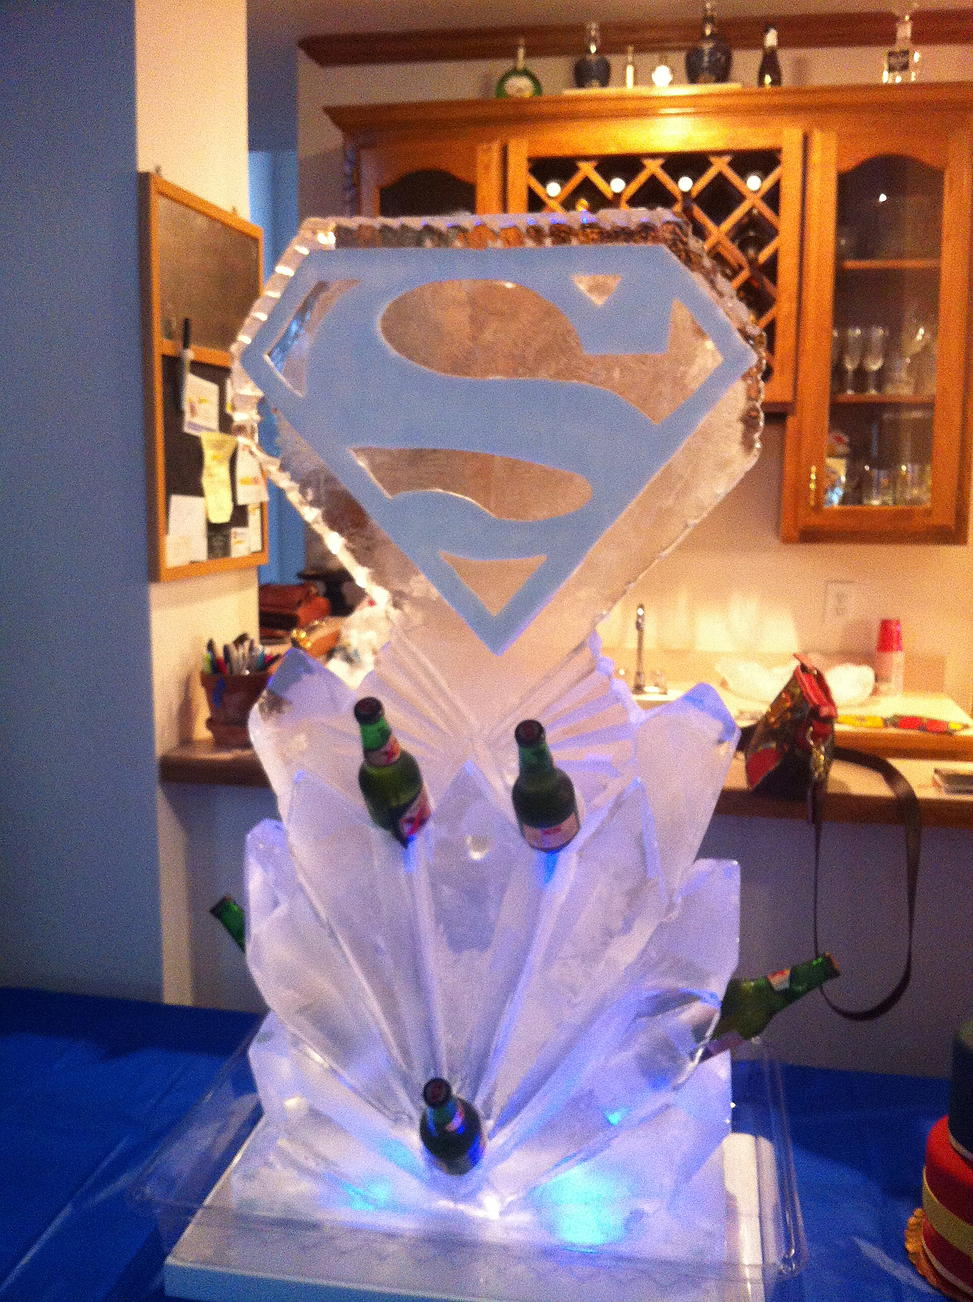 Superman logo bottle holder